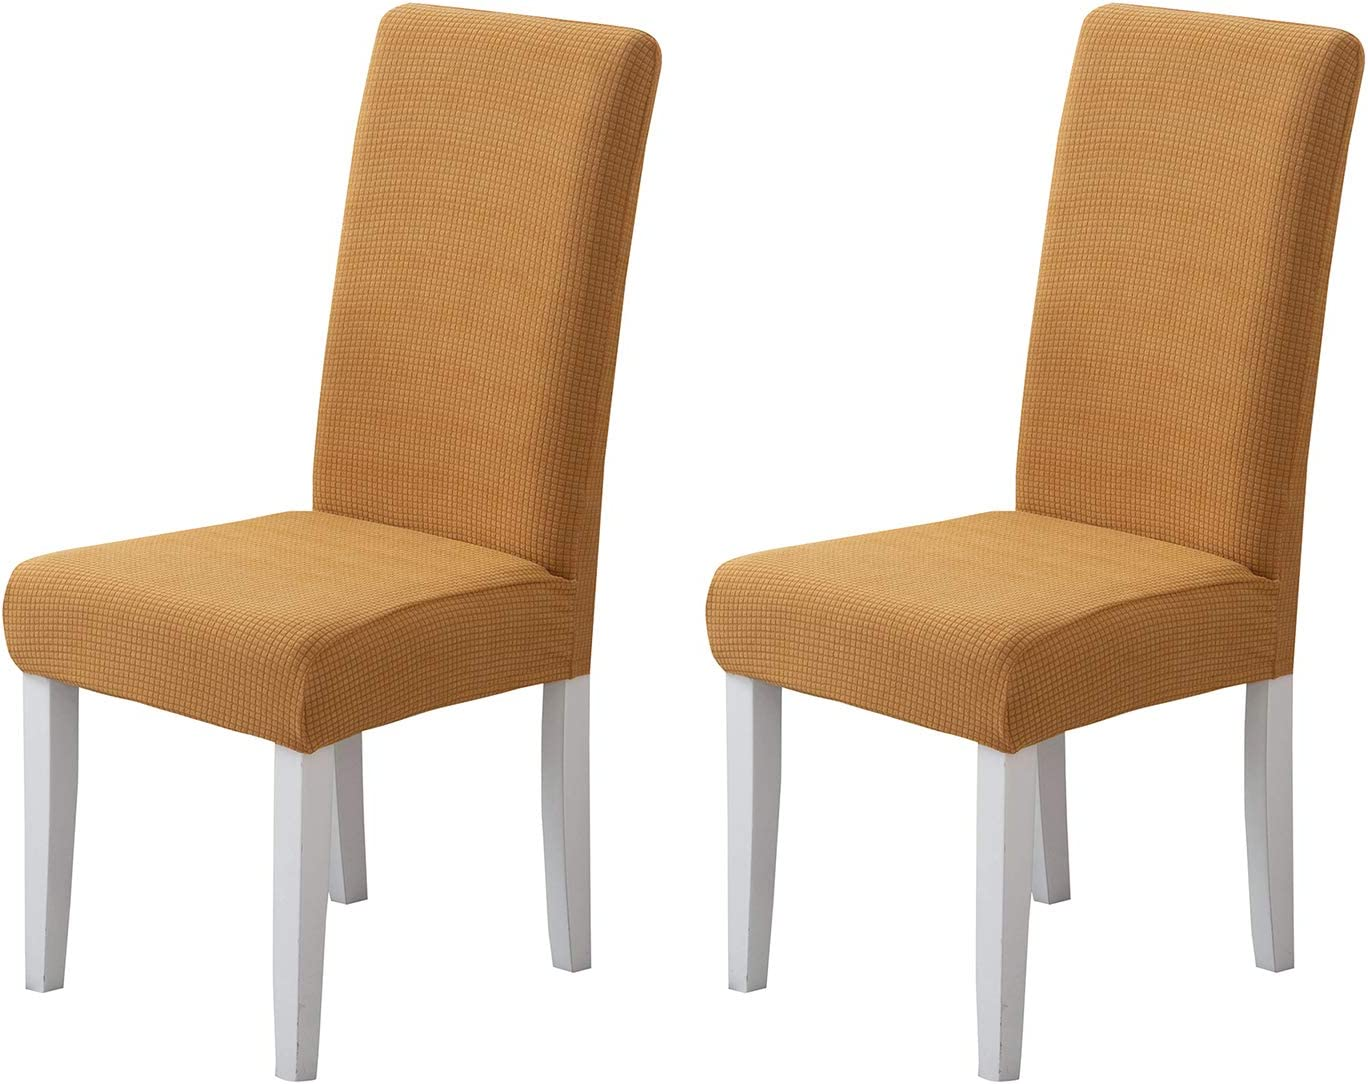 Pack of 2 - Dining Room Chair Slipcovers, Stretch Spandex Dining Chair Covers, Furniture Protector Covers Removable & Washable, Perfect for Dining Room, Restaurant, Hotel, Ceremony, Event Khaki